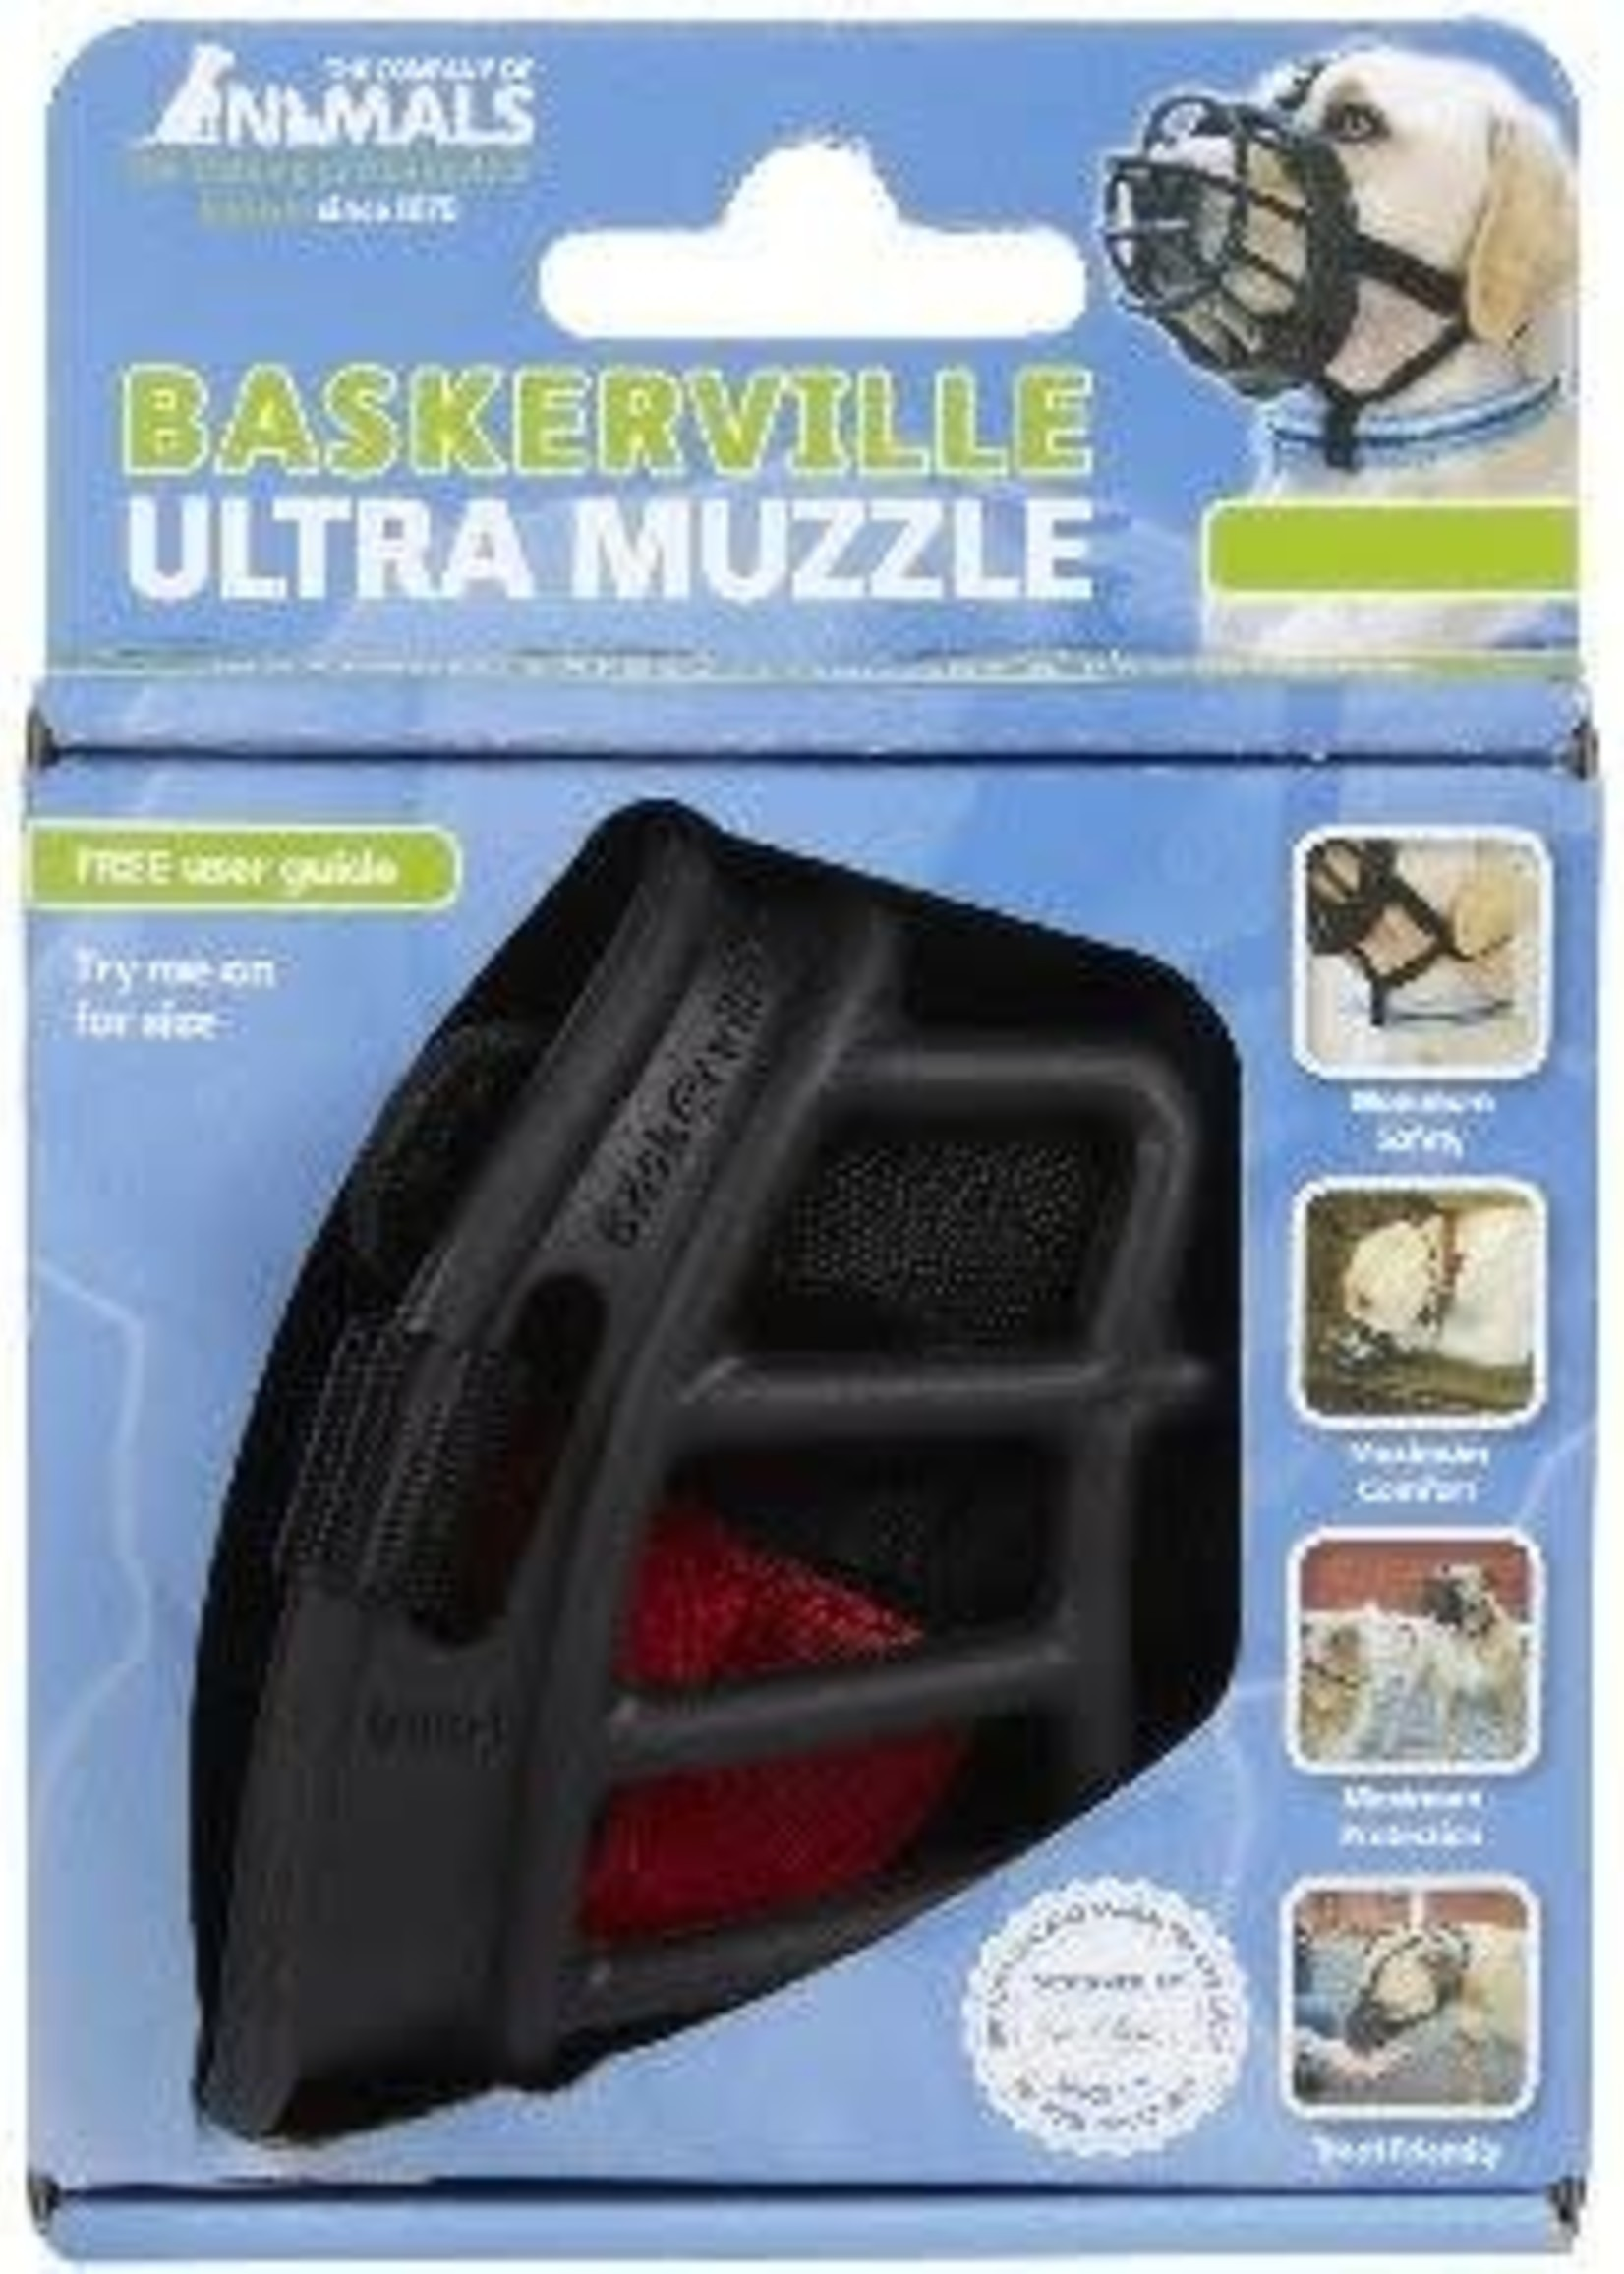 The Company of Animals BASKERVILLE ULTRA MUZZLE - 4